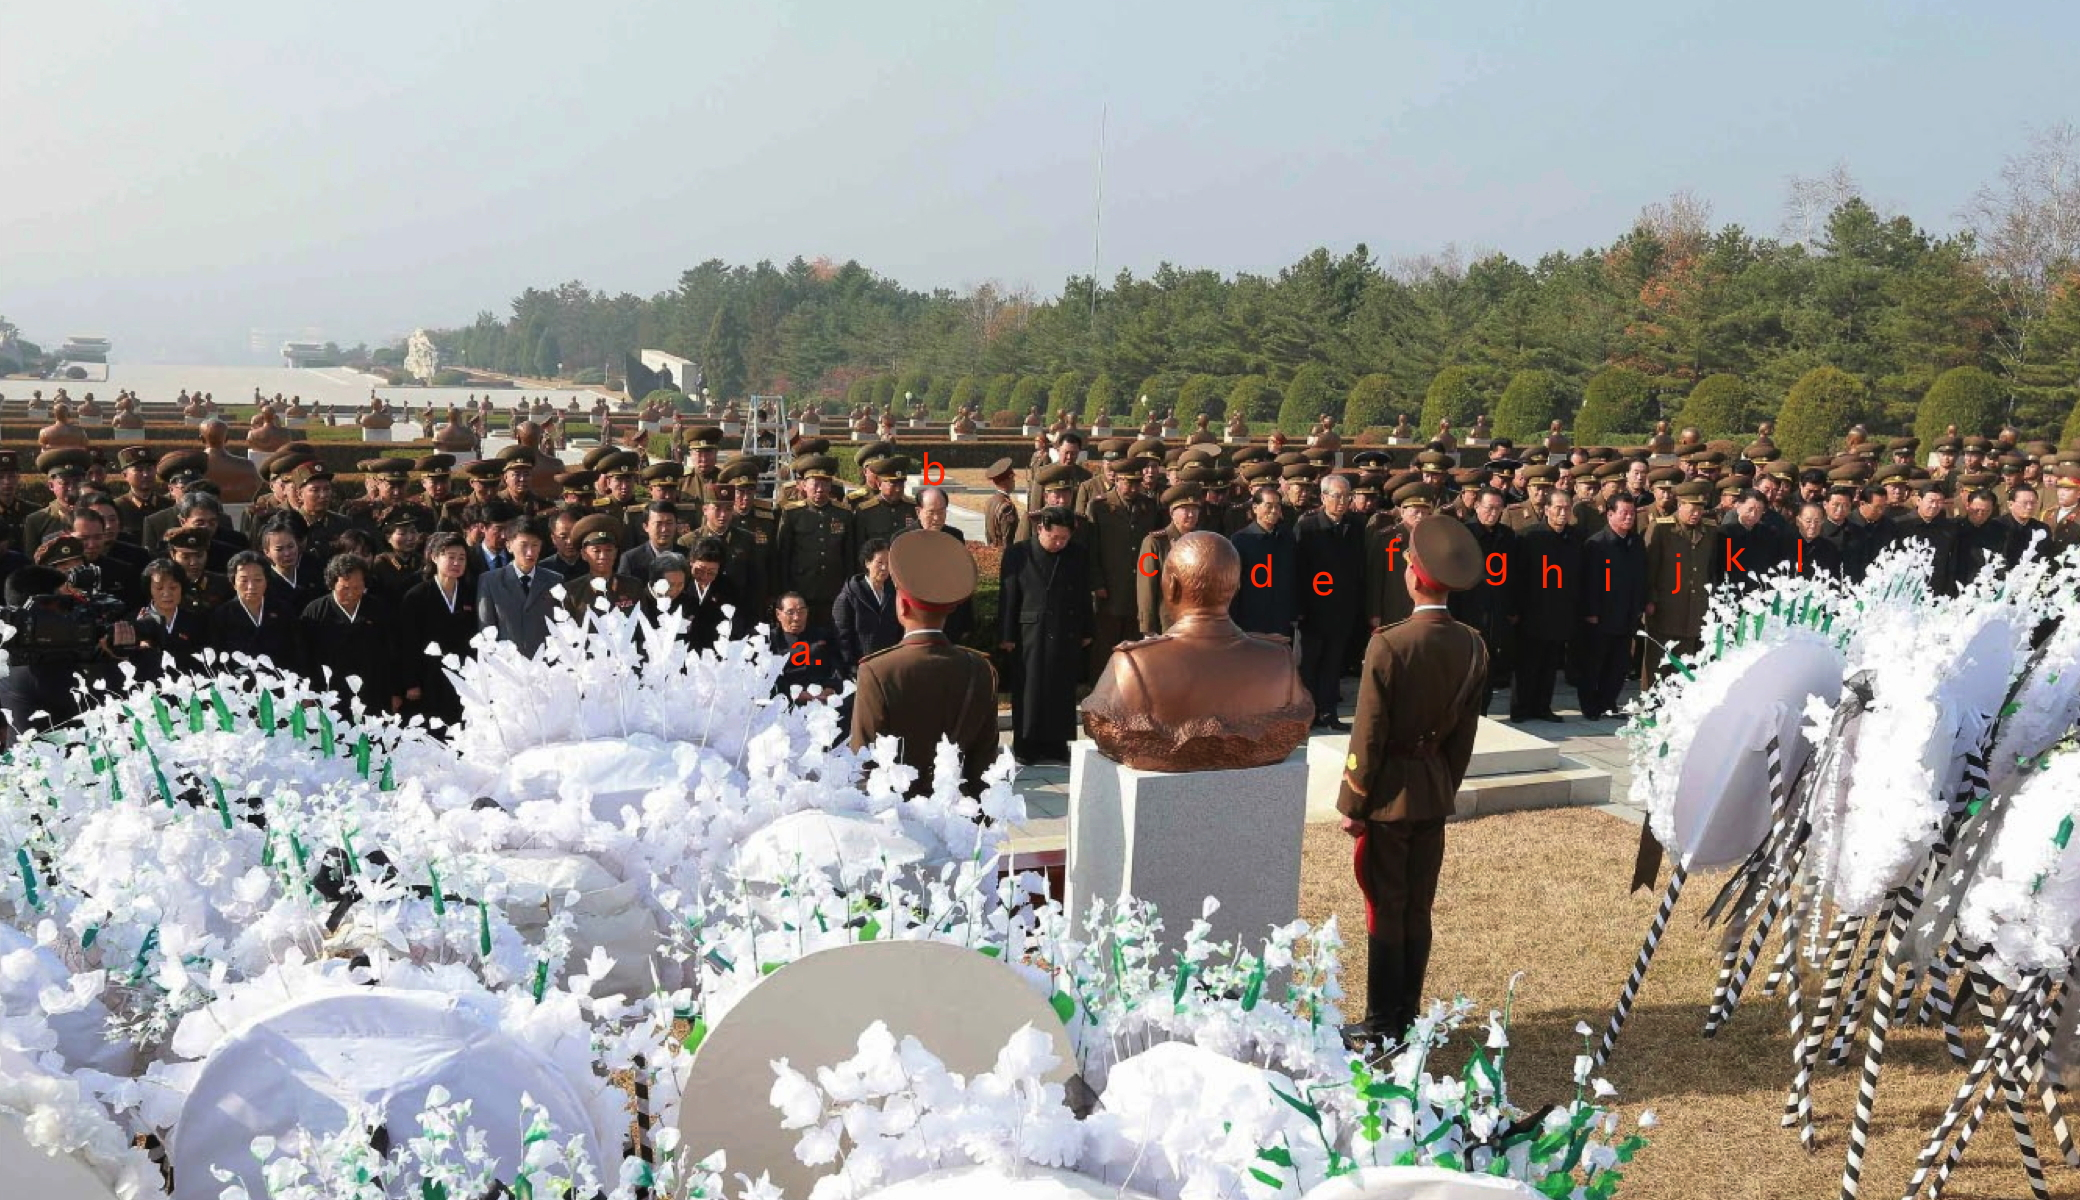 DPRK leadership attending Ri Ul Sol's interment ceremony: a. Kim Chol Man (Member, WPK Central Committee; former Chairman Second Economic Committee); b. Kim Yong Nam (SPA Presidium President); c. Gen. Ri Yong Gil (Chief of the KPA General Staff) ; d. Pak Pong Ju (DPRK Premier); e. Kim Ki Nam (WPK Secretary of Propaganda and Agitation); f. Gen. Kim Wo'n-hong (Minister of State Security); g. Kim Yang Gon (WPK Secretary for the United Front); h. Kwak Pom Gi (WPK Secretary for Planning and Finance); i. O Su Yong (WPK Secretary for Light Industry); j. Col. Gen. Choe Pu Il (Minister of the People's Security); k. Ro Tu Chol (Chairman of the State Planning Commission; and, l. Jo Yon Jun (Senior Deputy Director of the WPK Organization Guidance Department) (Photo: Rodong Sinmun).